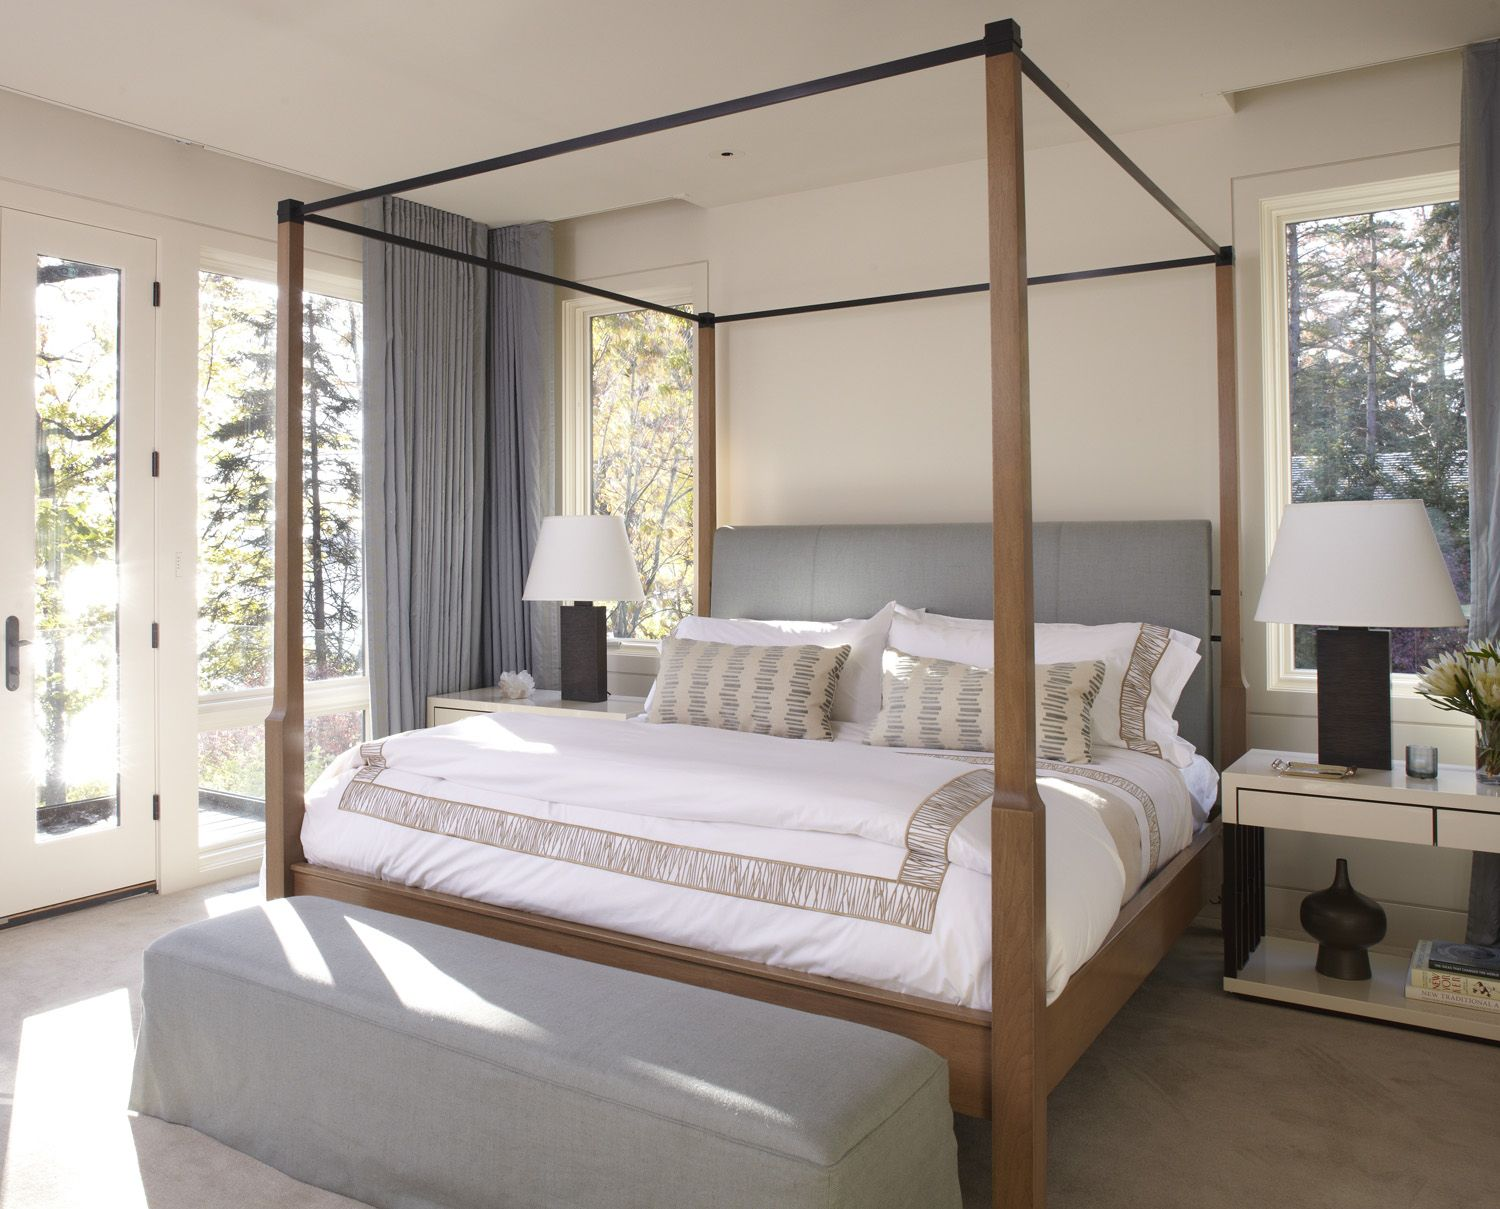 Four Post Canopy Bed 40 best canopy bed ideas - four poster beds